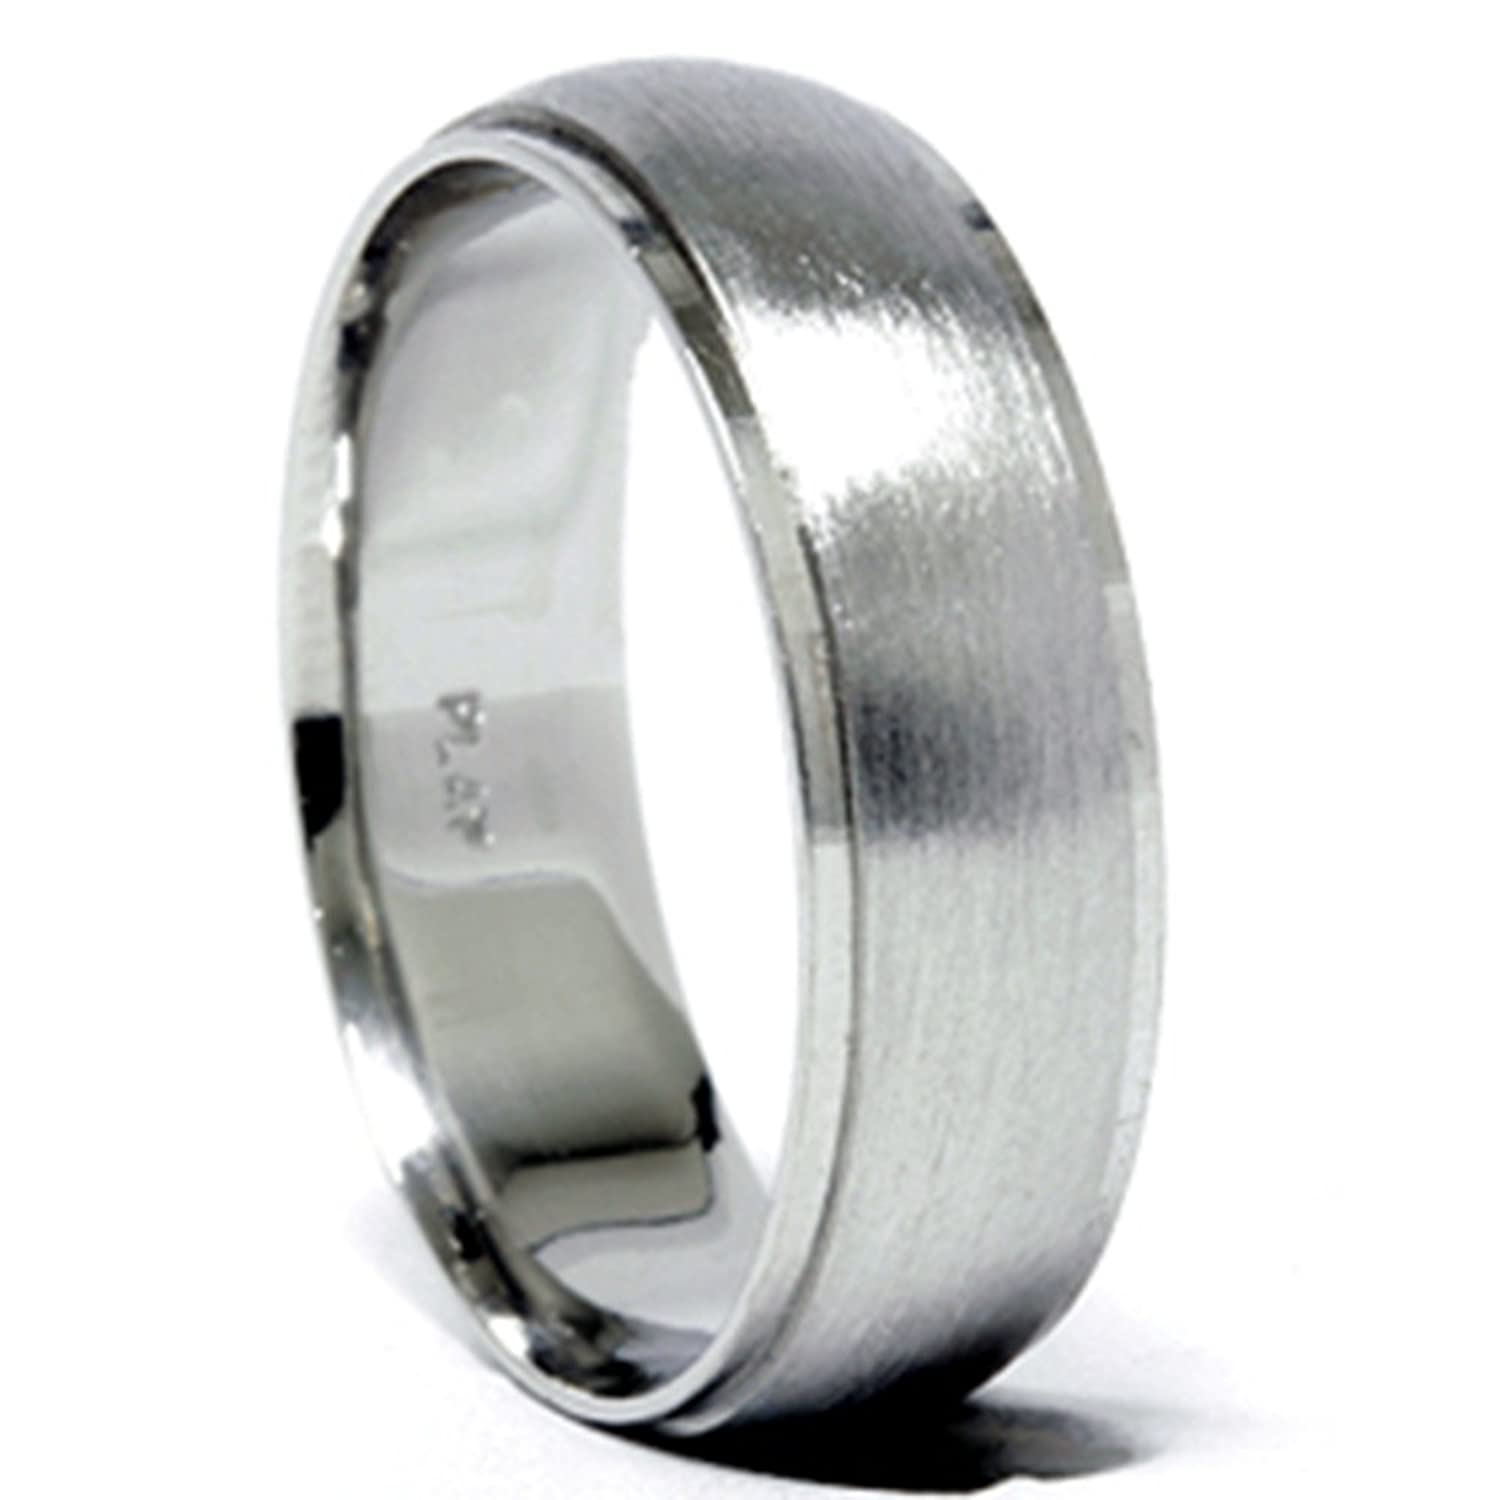 finish g brushed modern s product wedding platinum simon mens band men